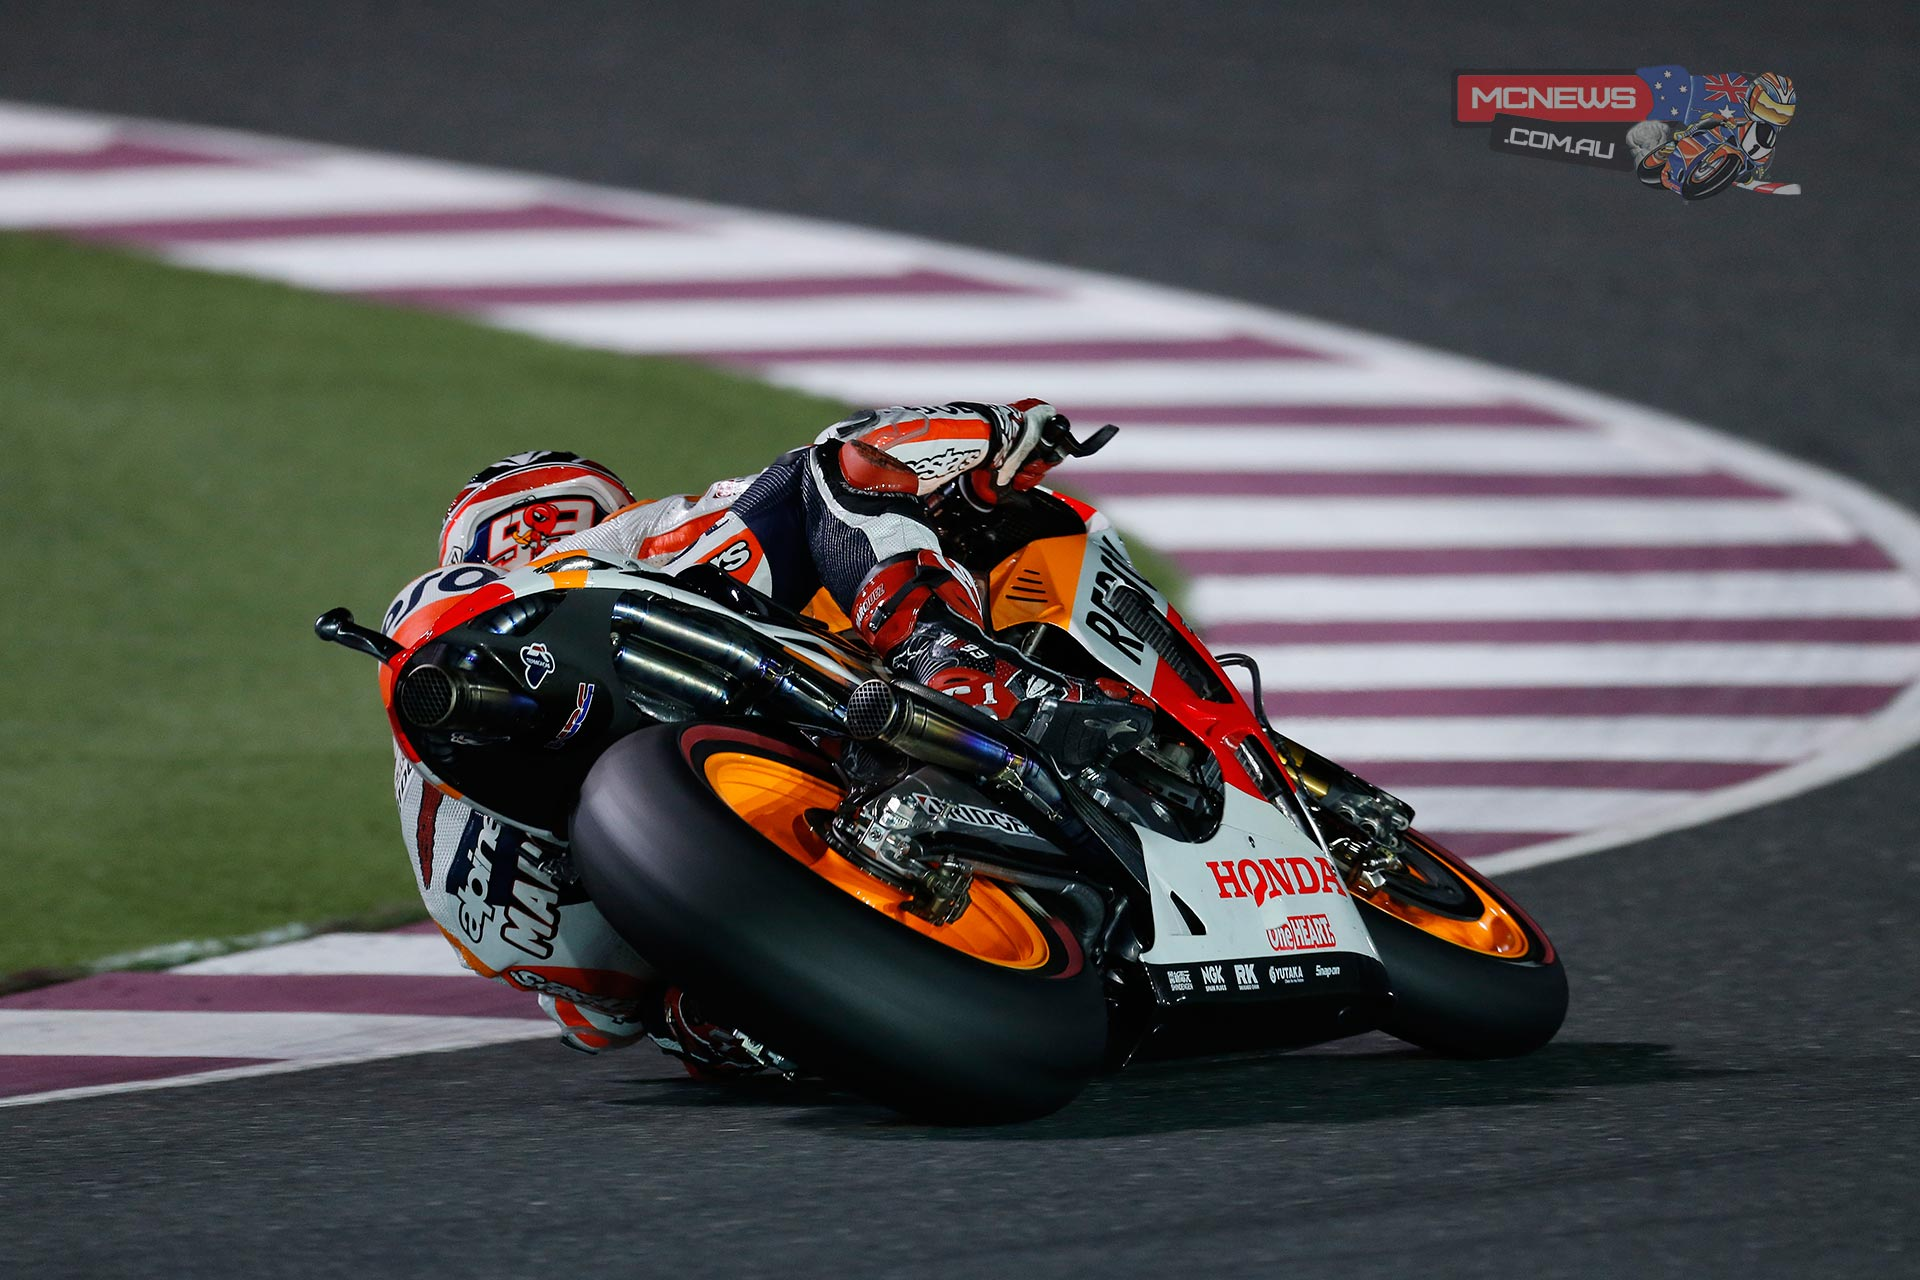 "Marc Marquez - 1st - 1'54.507 - ""I'm really happy and this pole position is a special one for me, because after coming back from injury it gives me a boost in confidence. In any case, we know that tomorrow is the day that counts and it's in the race that points are decided, so we have to be very focused. It is going to be a very tough for me physically, because I don't have much strength in my leg and I have to compensate with my right arm. We are happy with how today went and seem to have found a good setup, with just a few details still to refine in tomorrow's warmup. It will be difficult, because many riders have pace within a tenth of each other, but we shall try to have a good race"""